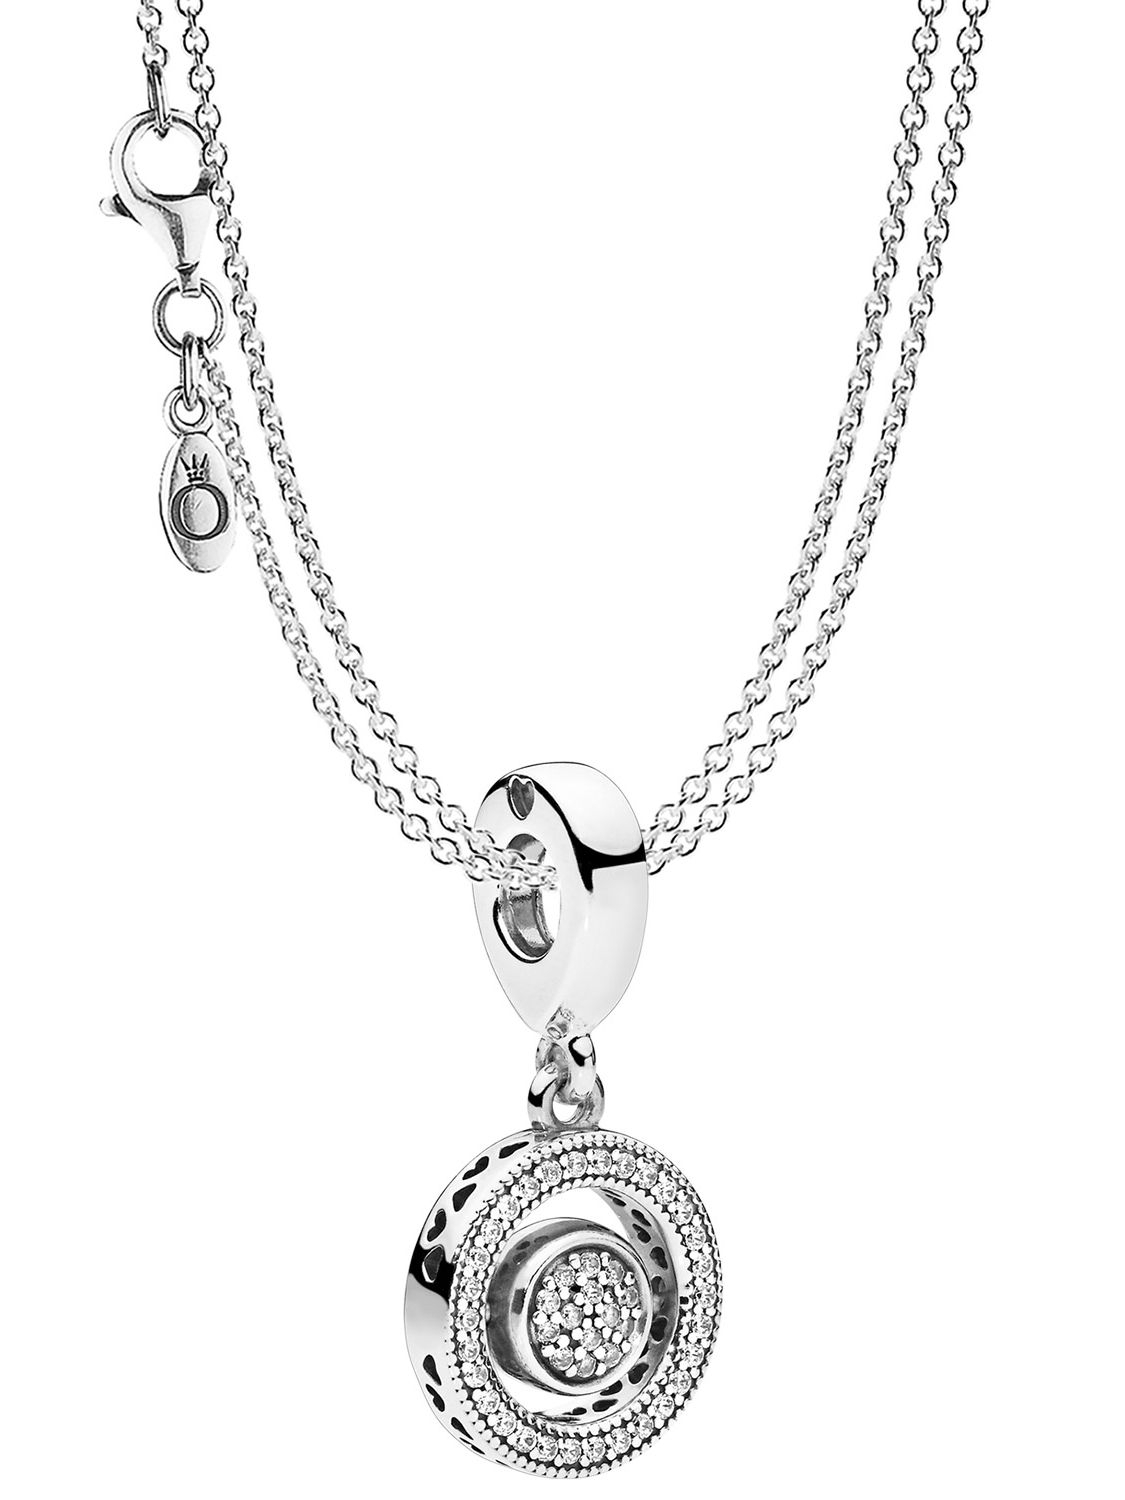 Pandora 08591 Necklace With Charm Pendant Logo Intended For Best And Newest Pandora Logo Pendant Necklaces (Gallery 5 of 25)